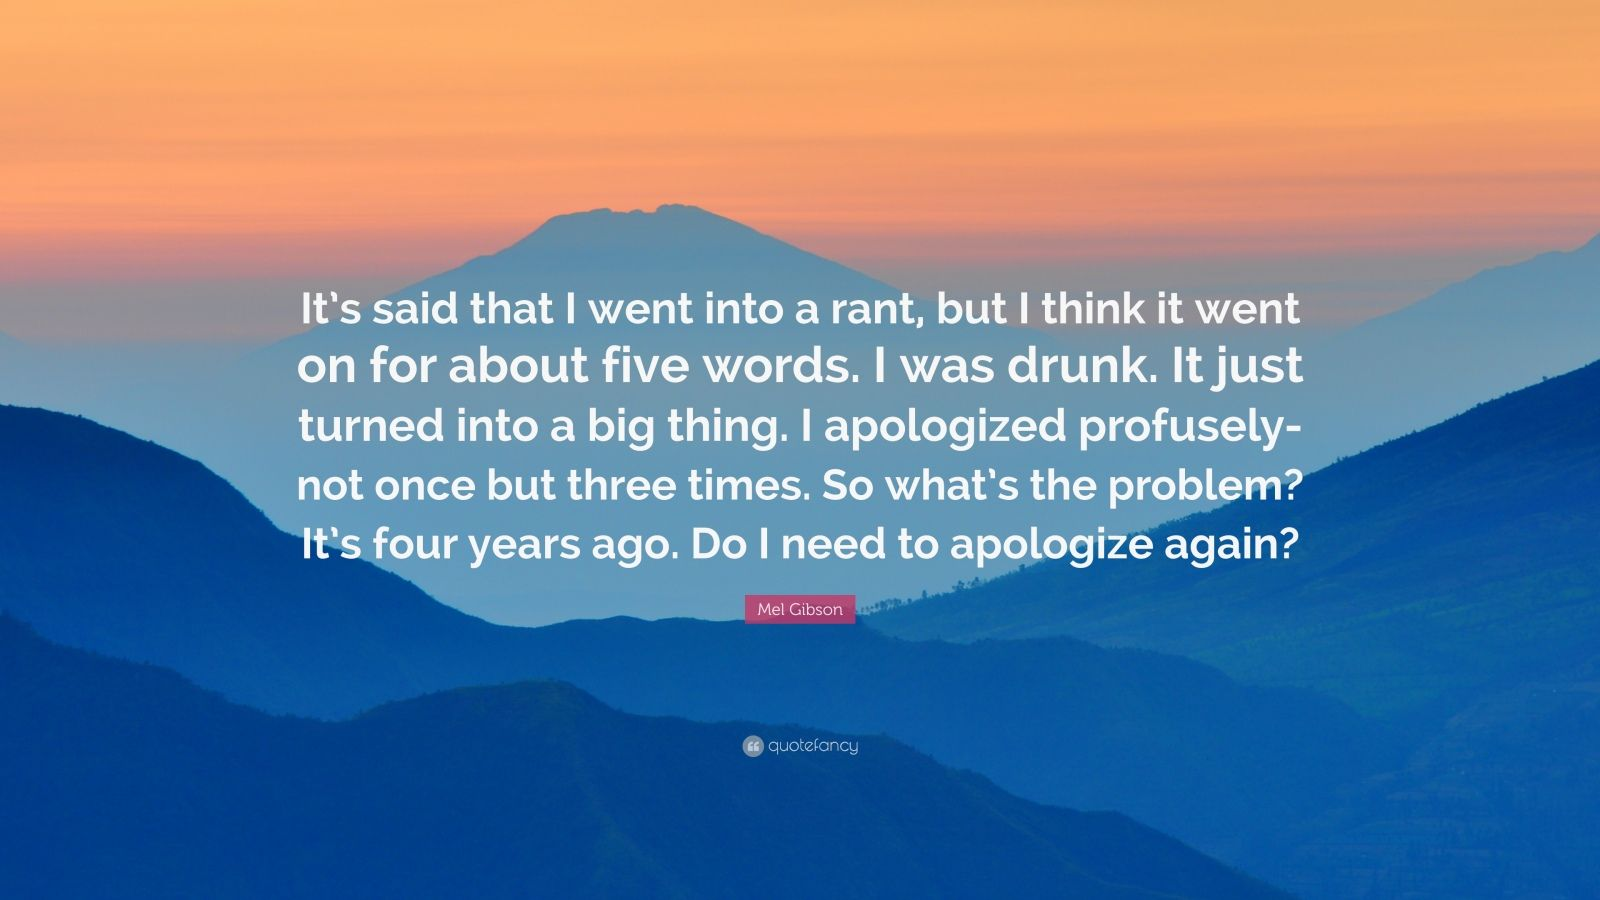 "Mel Gibson Quote: ""It's said that I went into a rant, but I think it went on for about five words. I was drunk. It just turned into a big thing. I apologized profusely-not once but three times. So what's the problem? It's four years ago. Do I need to apologize again?"""